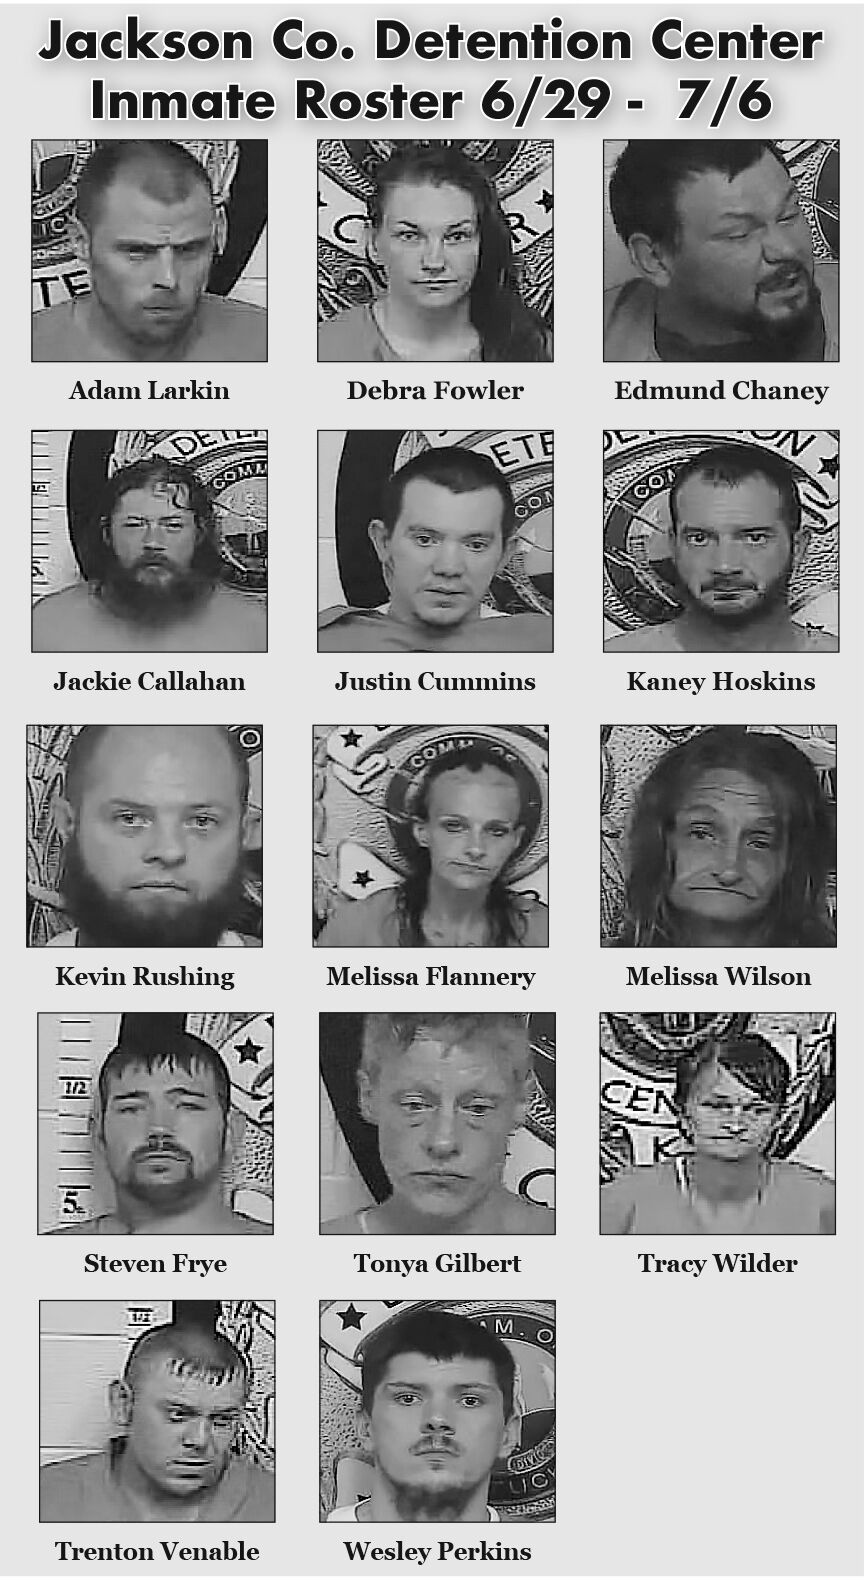 6.29-7.9 JC Inmate Roster